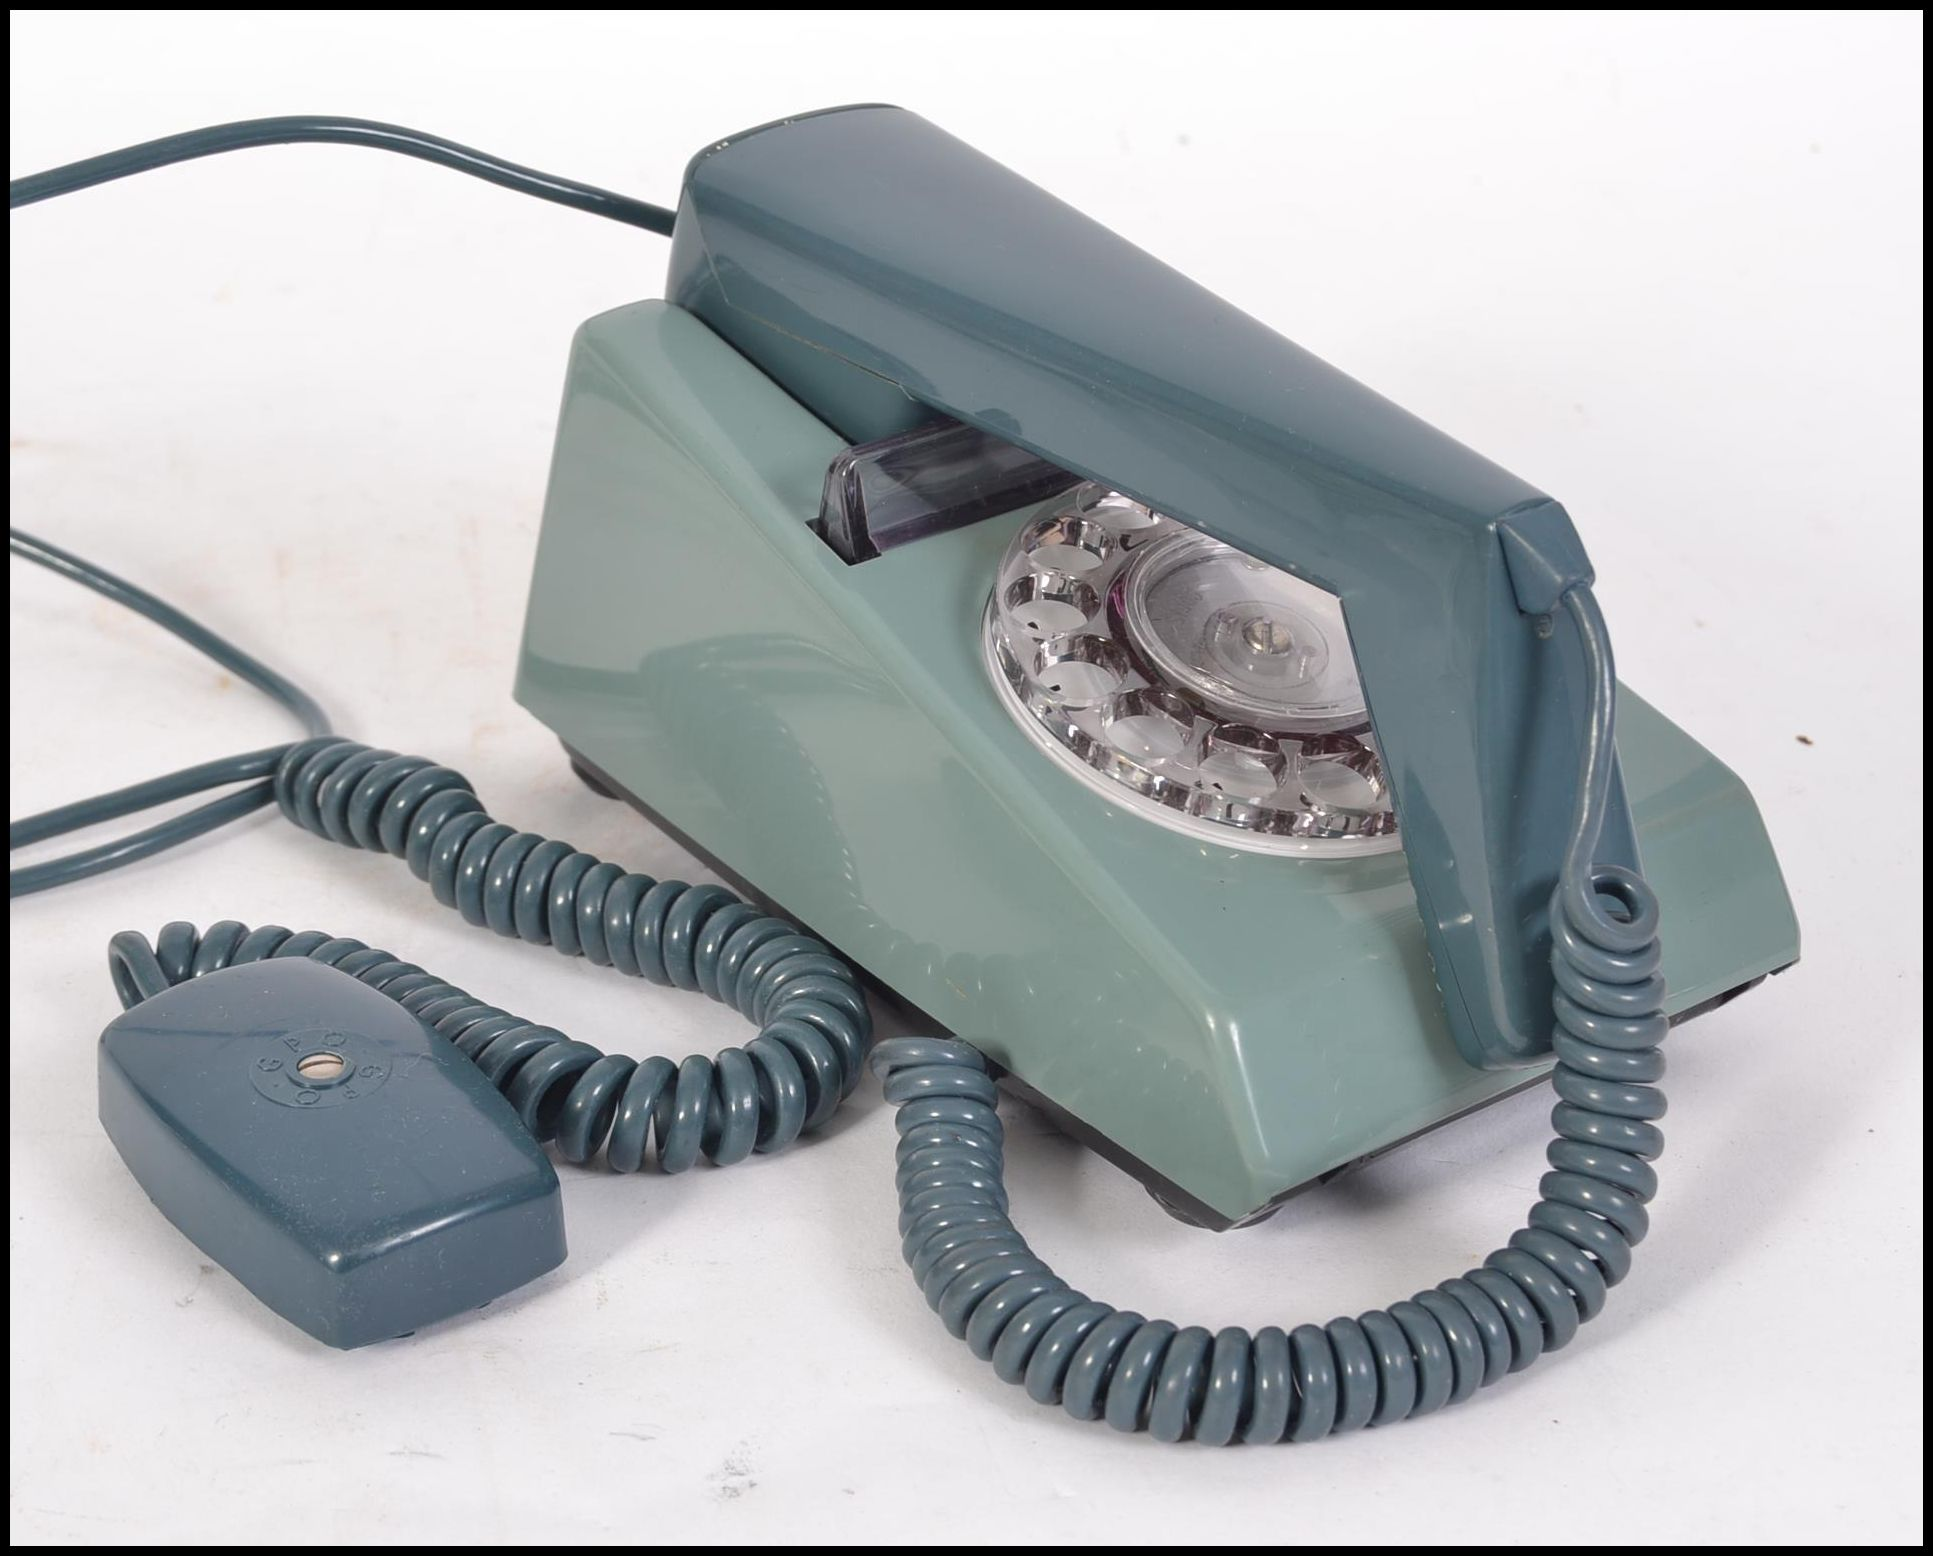 hight resolution of lot 292 a retro trim phone circa 1970 with rotary dial on an unusual teal